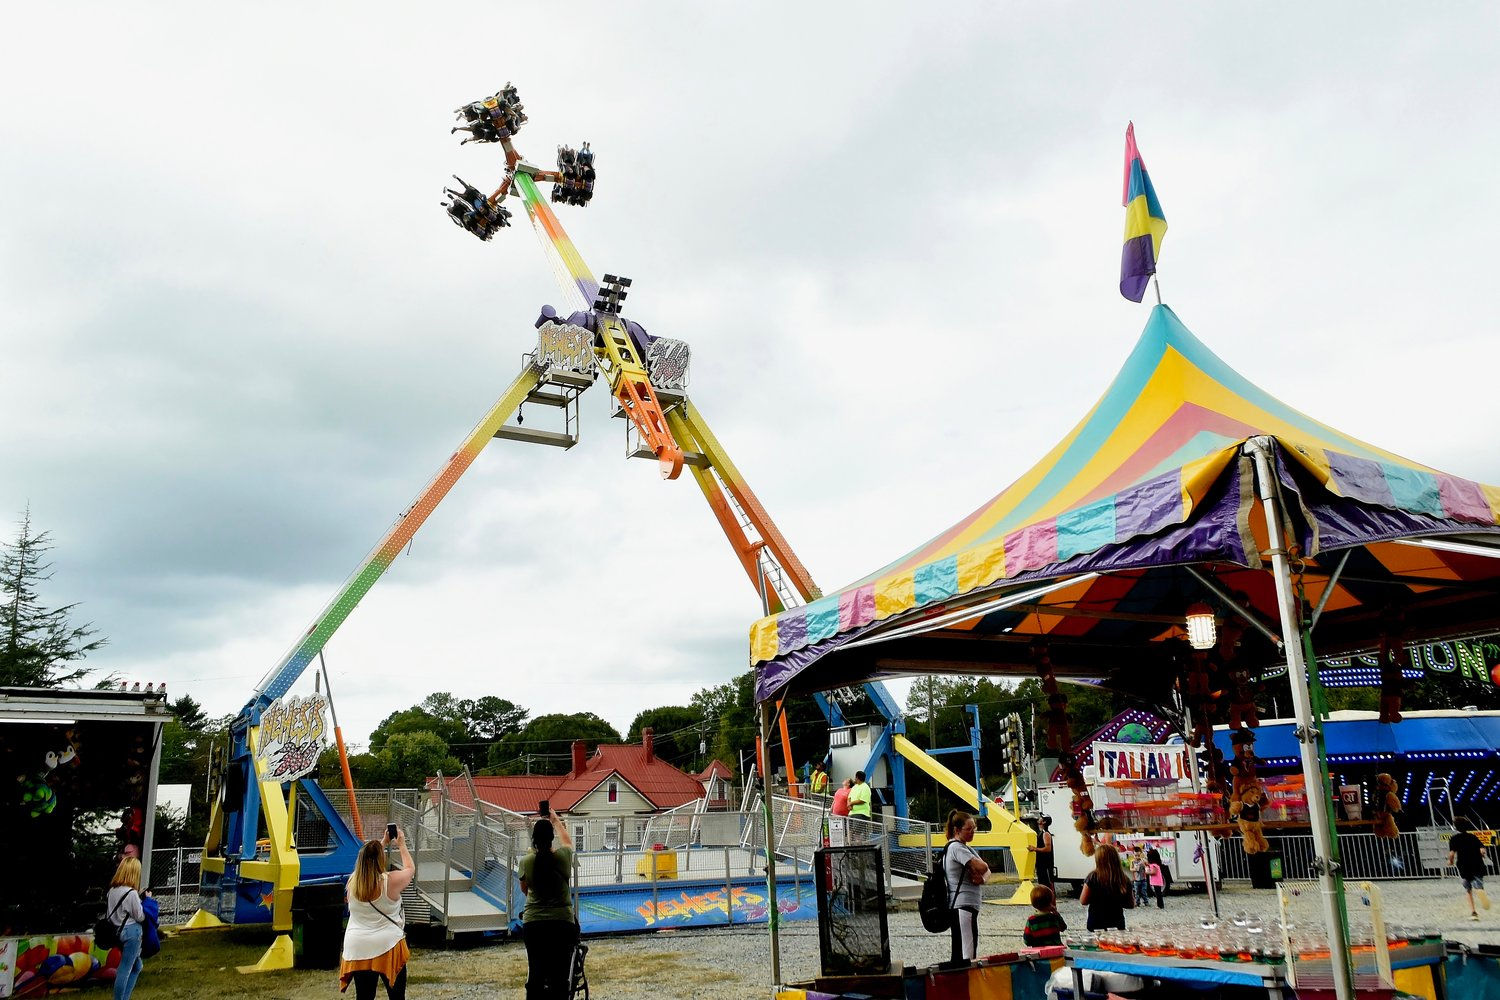 Thousands attended the 51st Annual Great Locomotive Chase Festival in downtown Adairsville over the weekend. The festival offered arts and crafts, carnival rides, food, music, and games and activities for children.